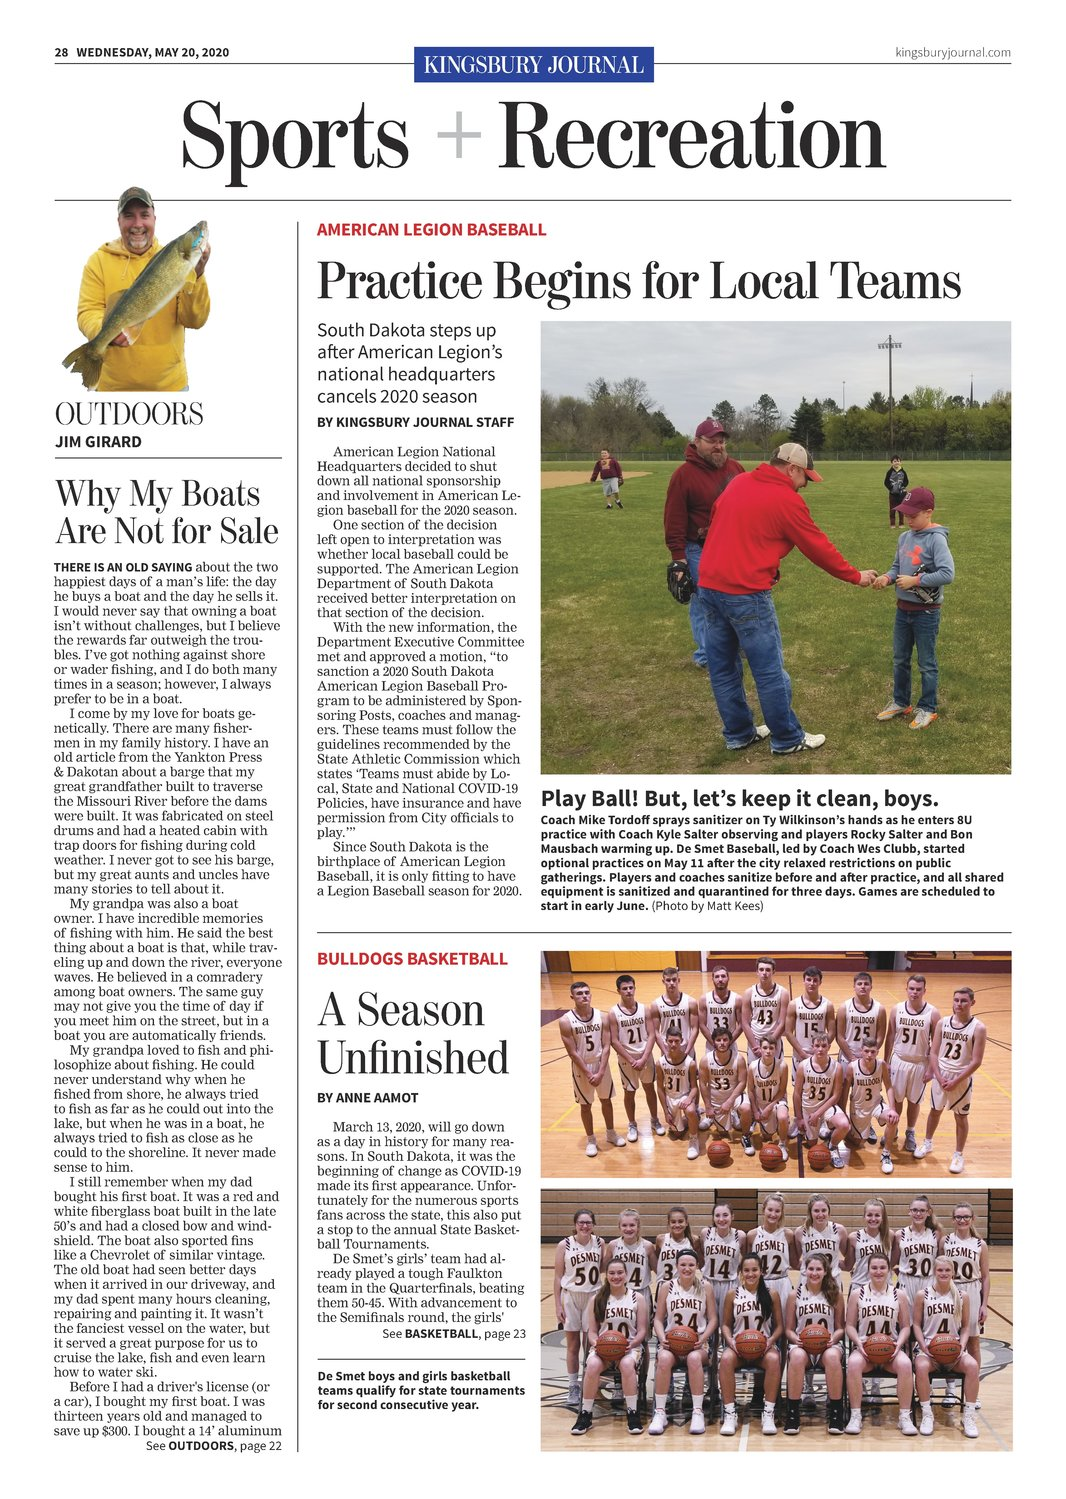 The back page features sports and recreation.